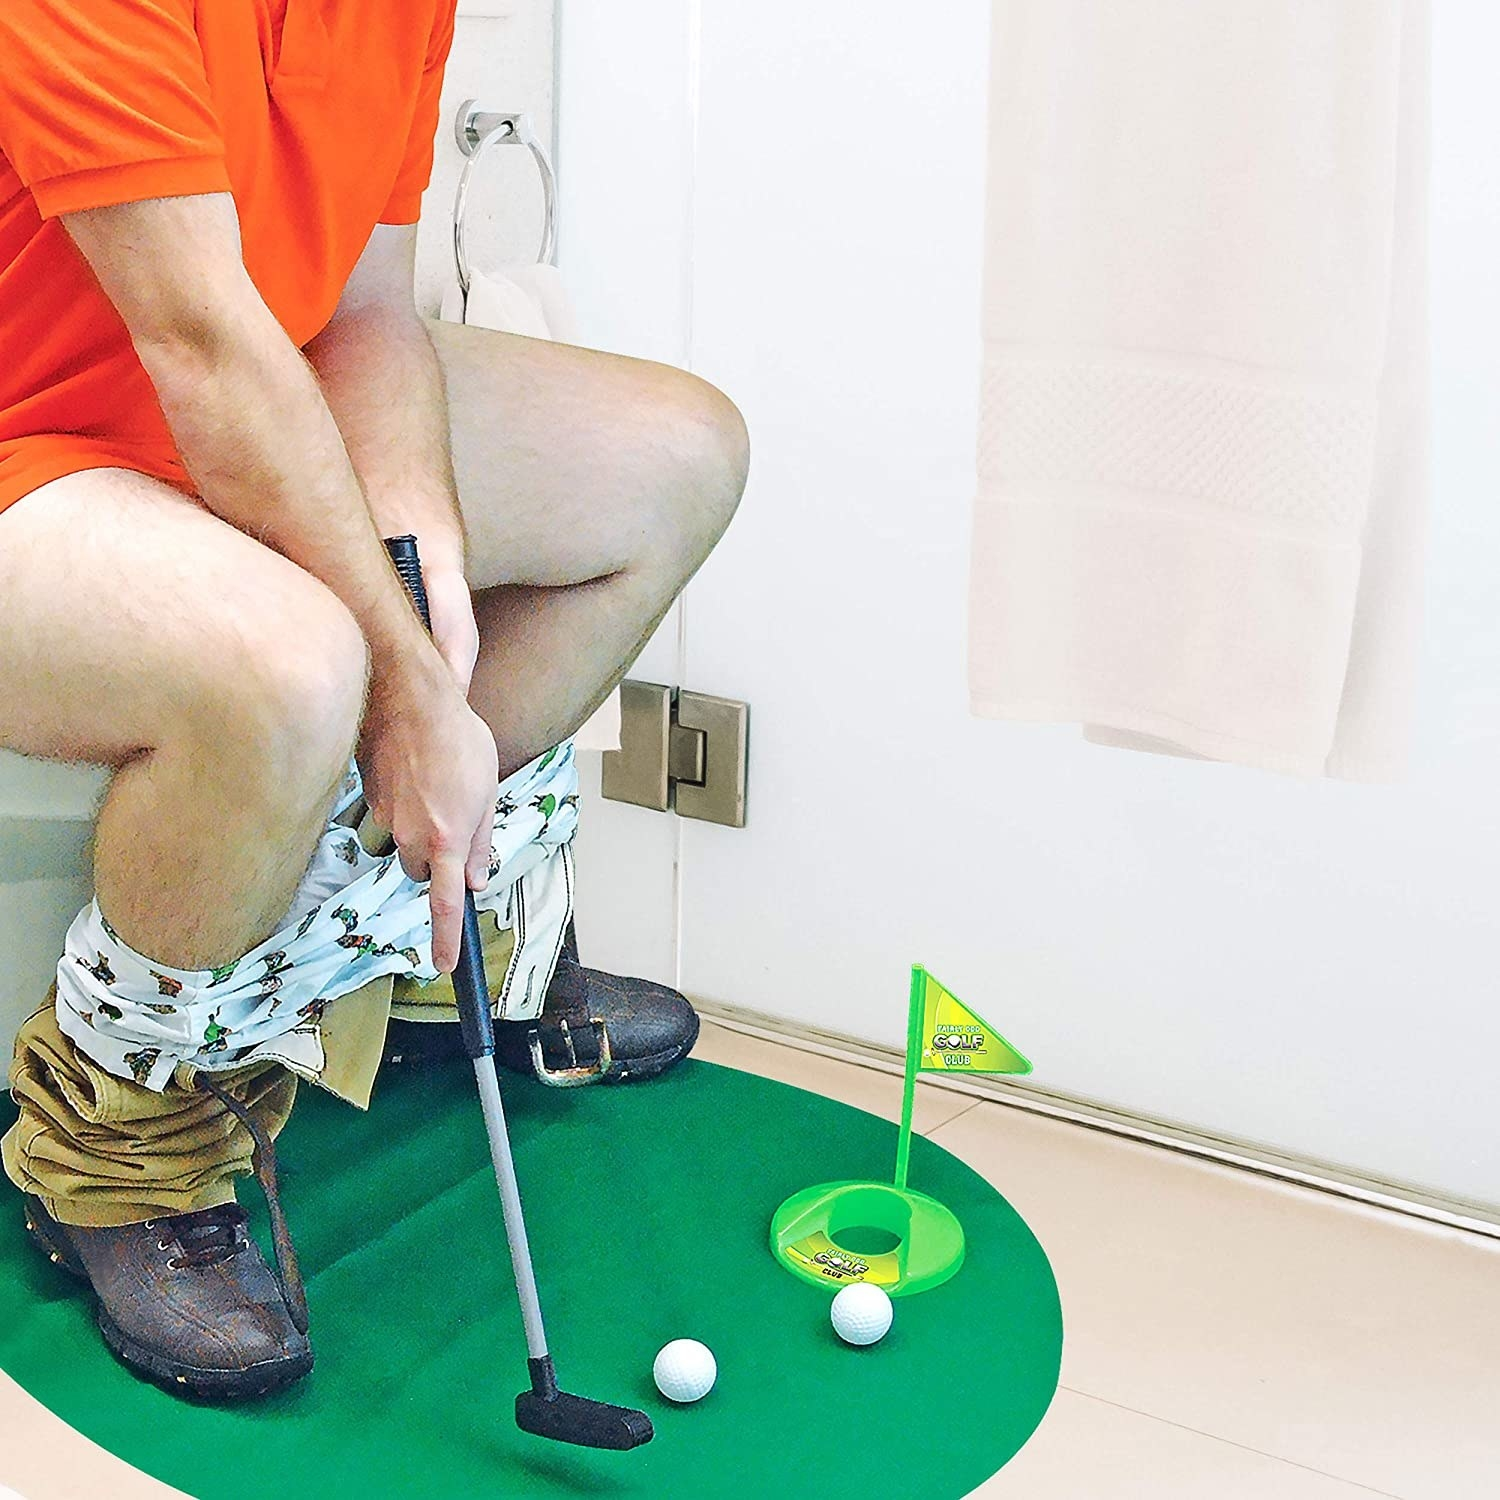 A person plays golf while sitting on the toilet